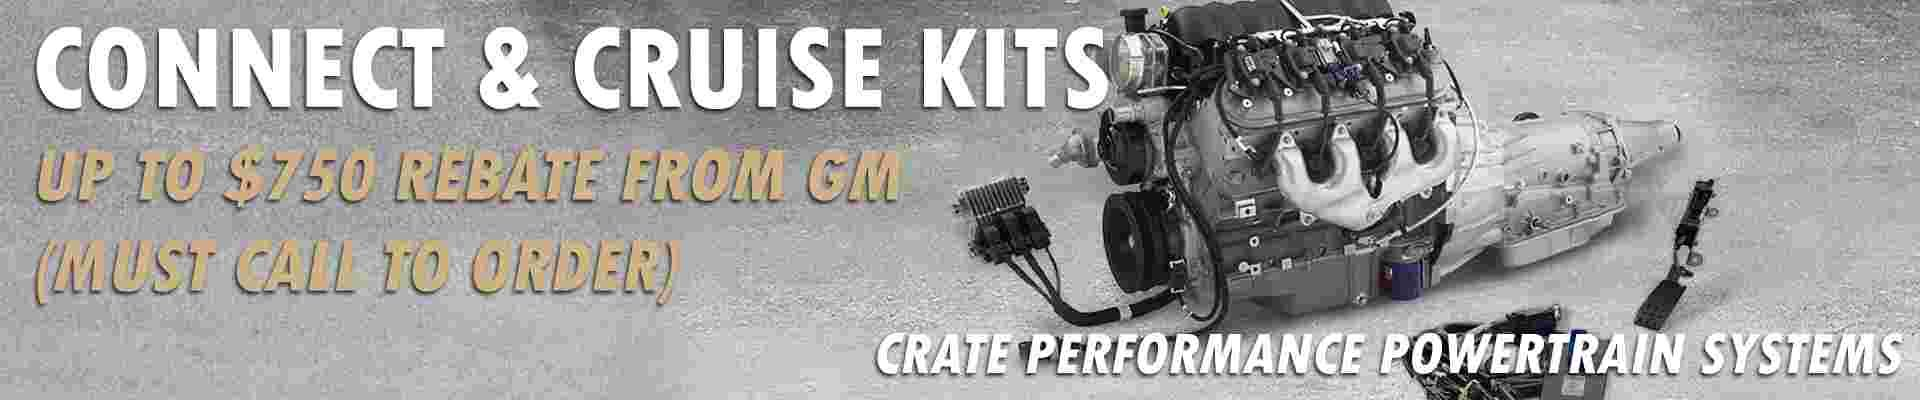 gm oem maintenance parts - national gm parts